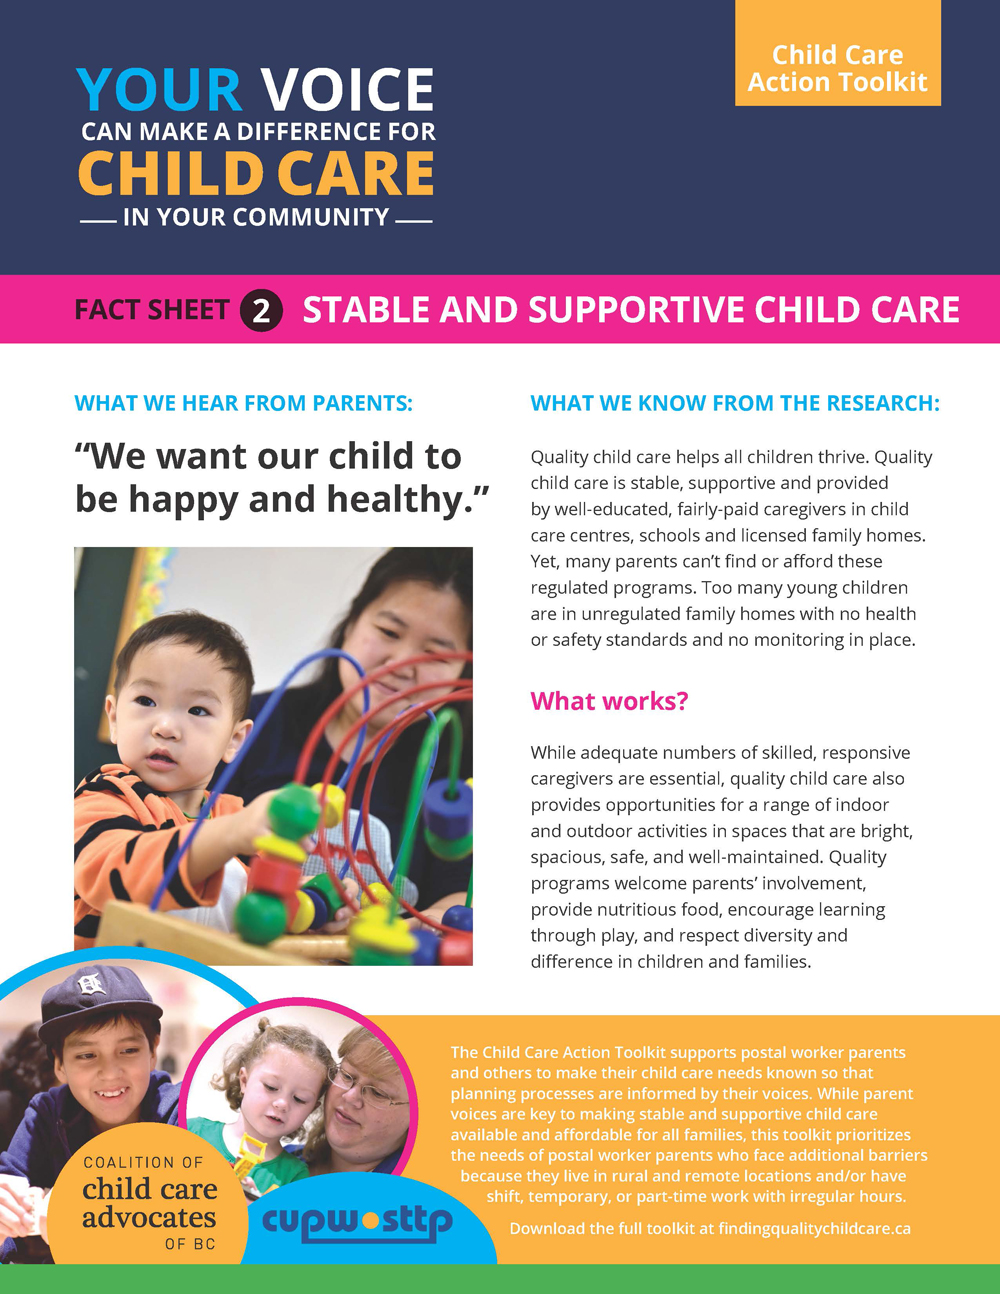 Fact Sheet 2: Stable and Supportive Child Care